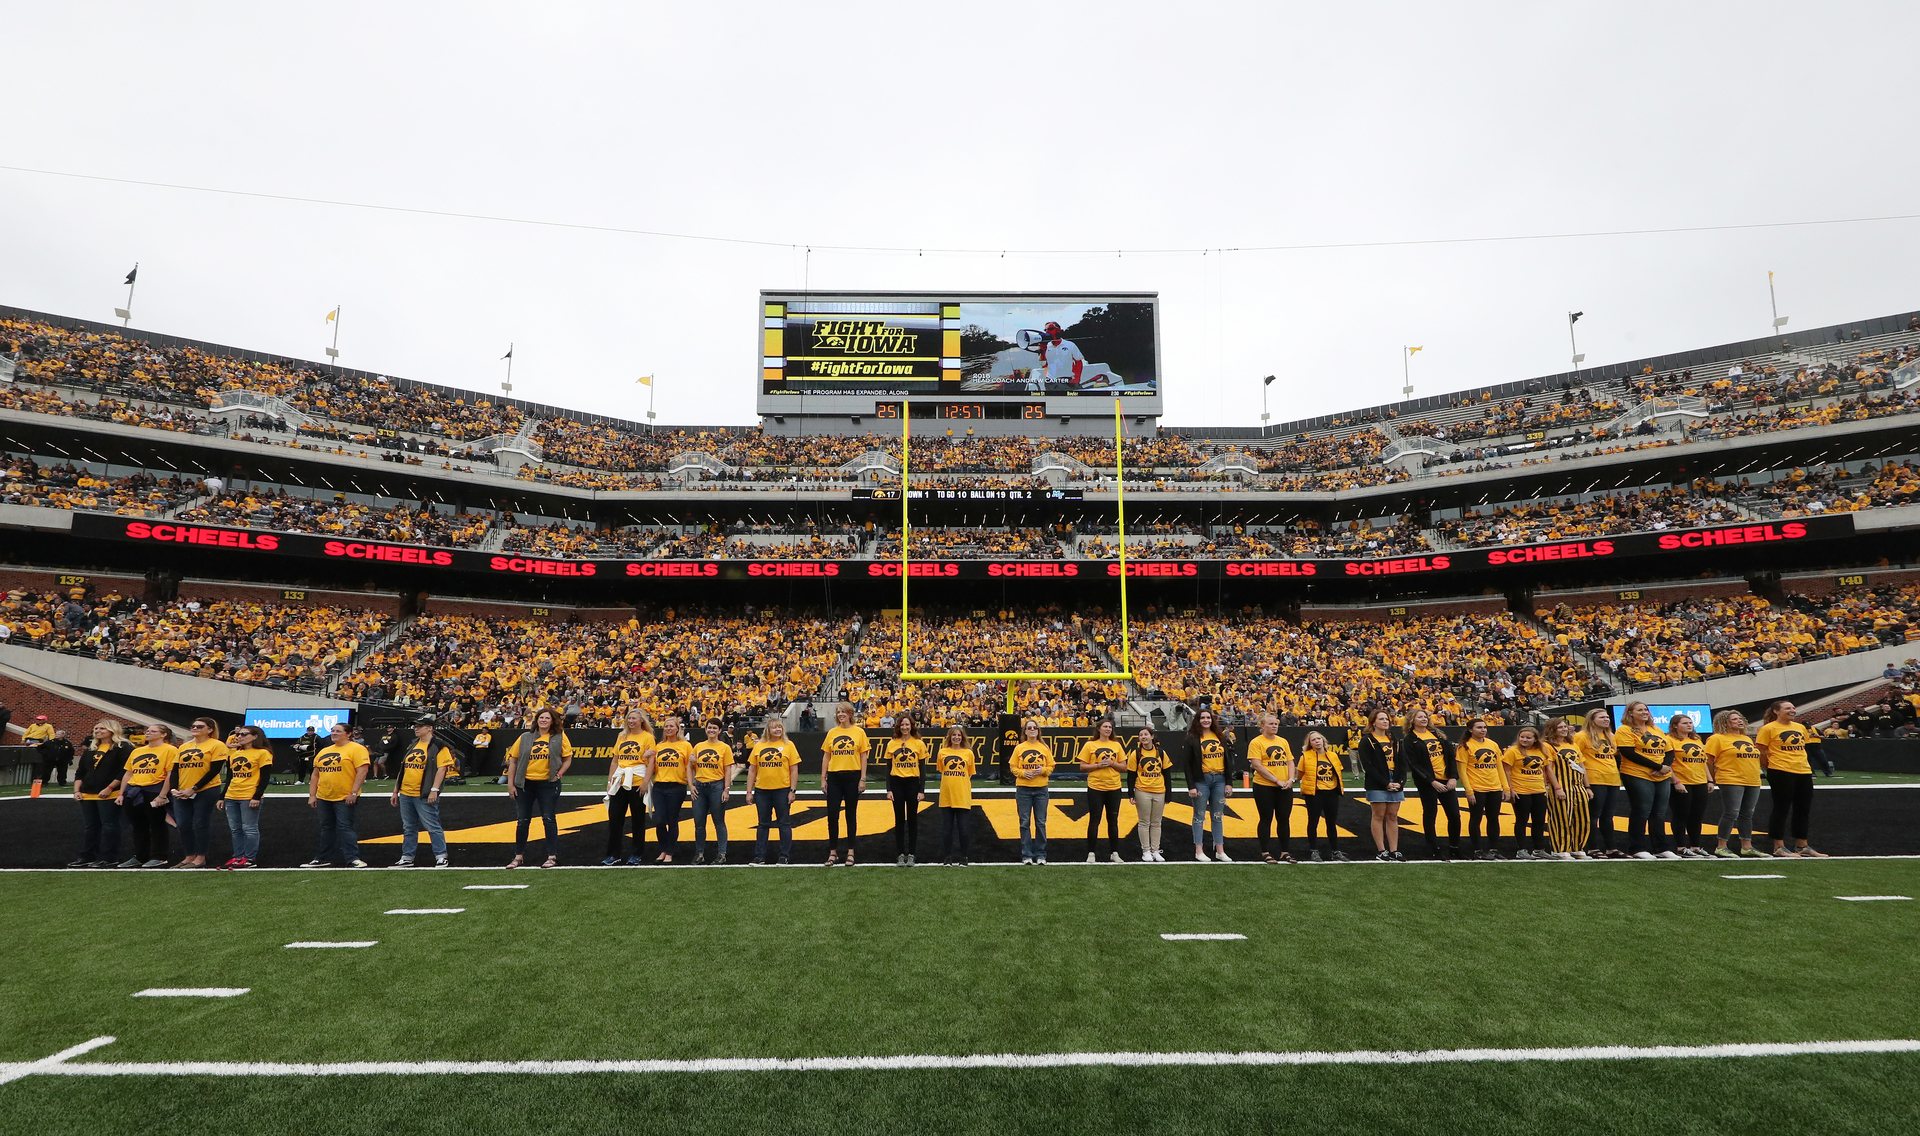 Alumni from the Iowa Rowing team are recognized during the Iowa Hawkeyes game against Middle Tennessee State on September 28, 2019. Photography by Brian Ray/hawkeyessports.com